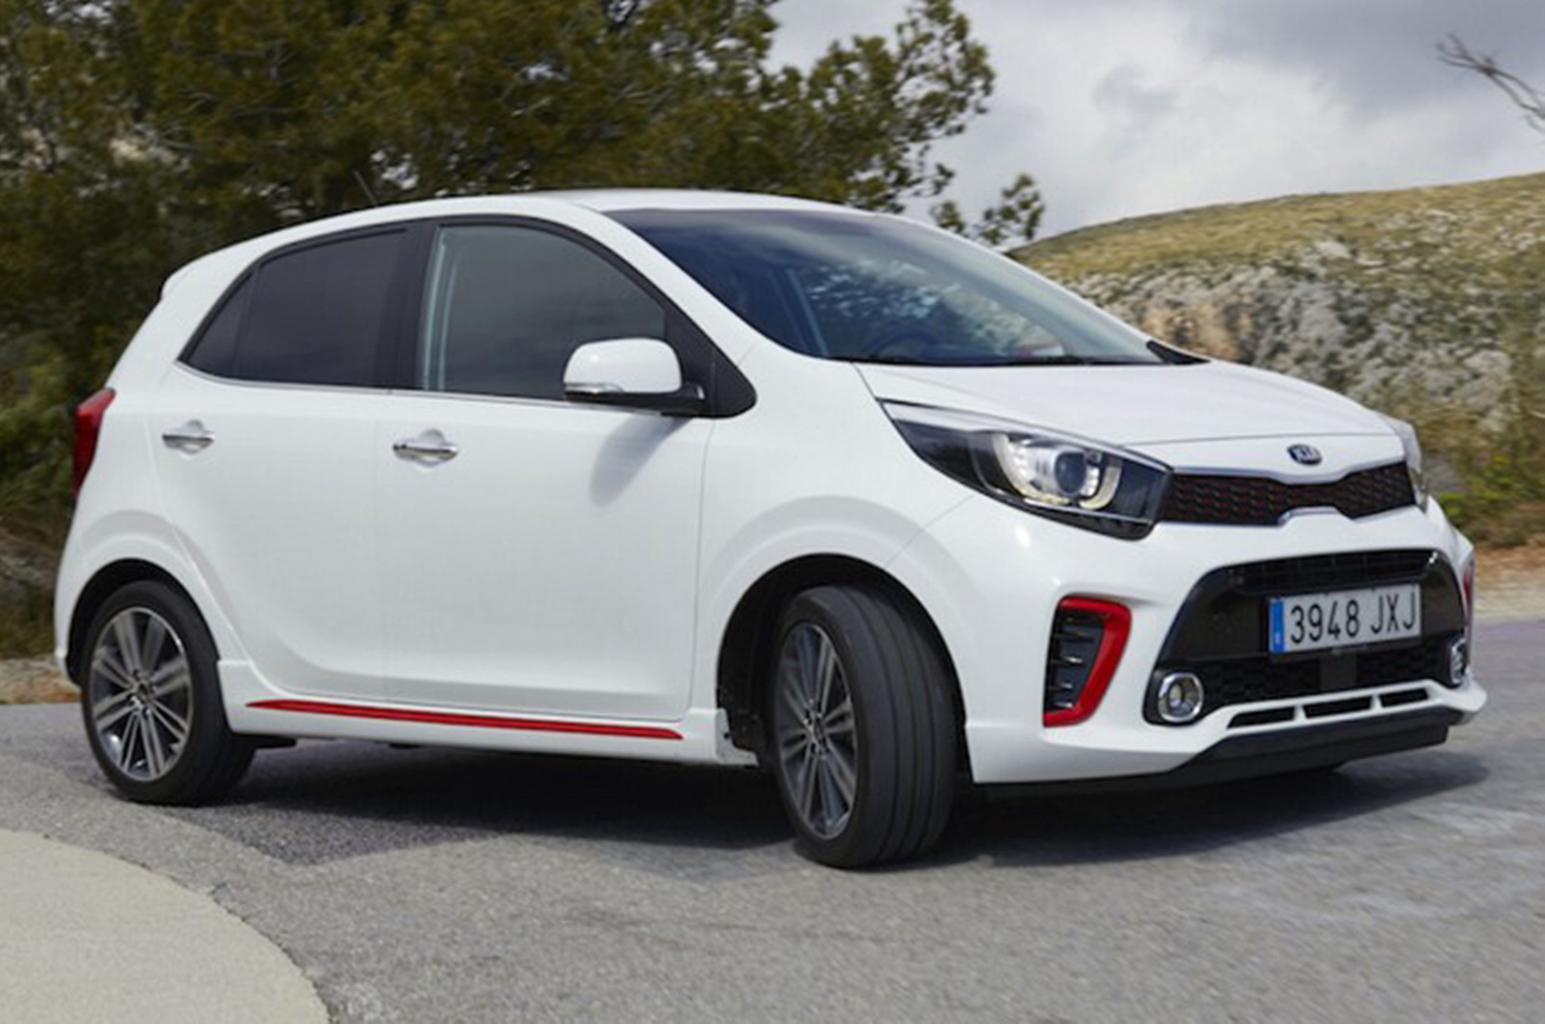 New Kia Picanto 2017 review verdict and spec